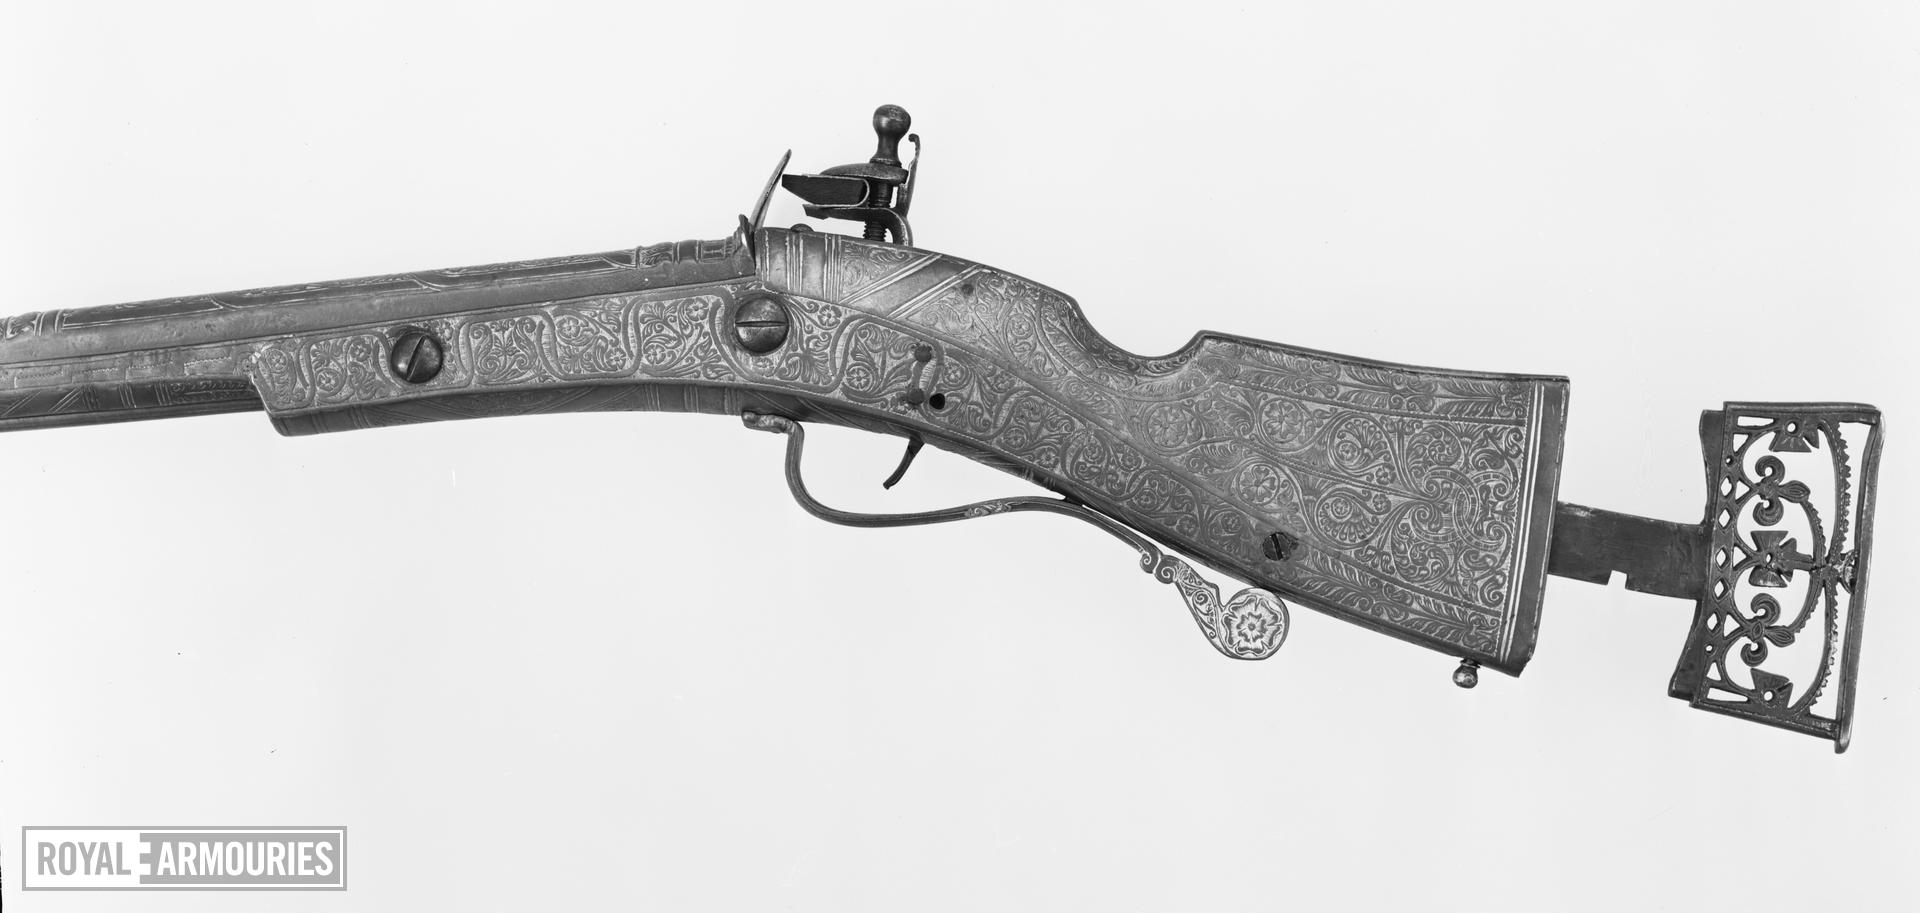 Flintlock gun. Scottish, the barrel is dated 1624, the lock about 1690. The royal crown may indicate that it was made for James I